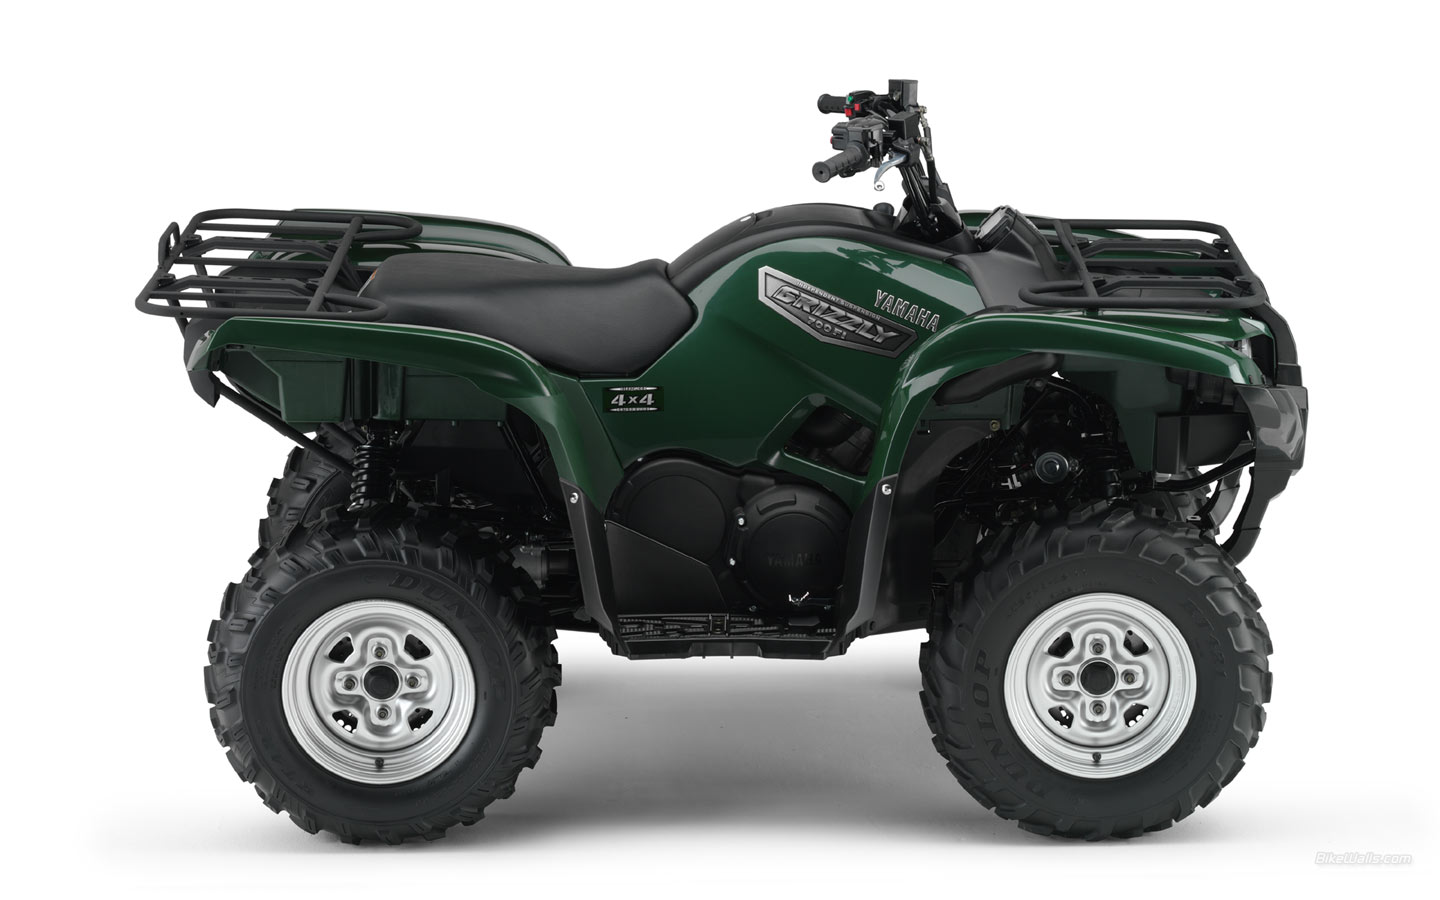 New 2015 Yamaha Grizzly Rumor Release, Reviews and Models on